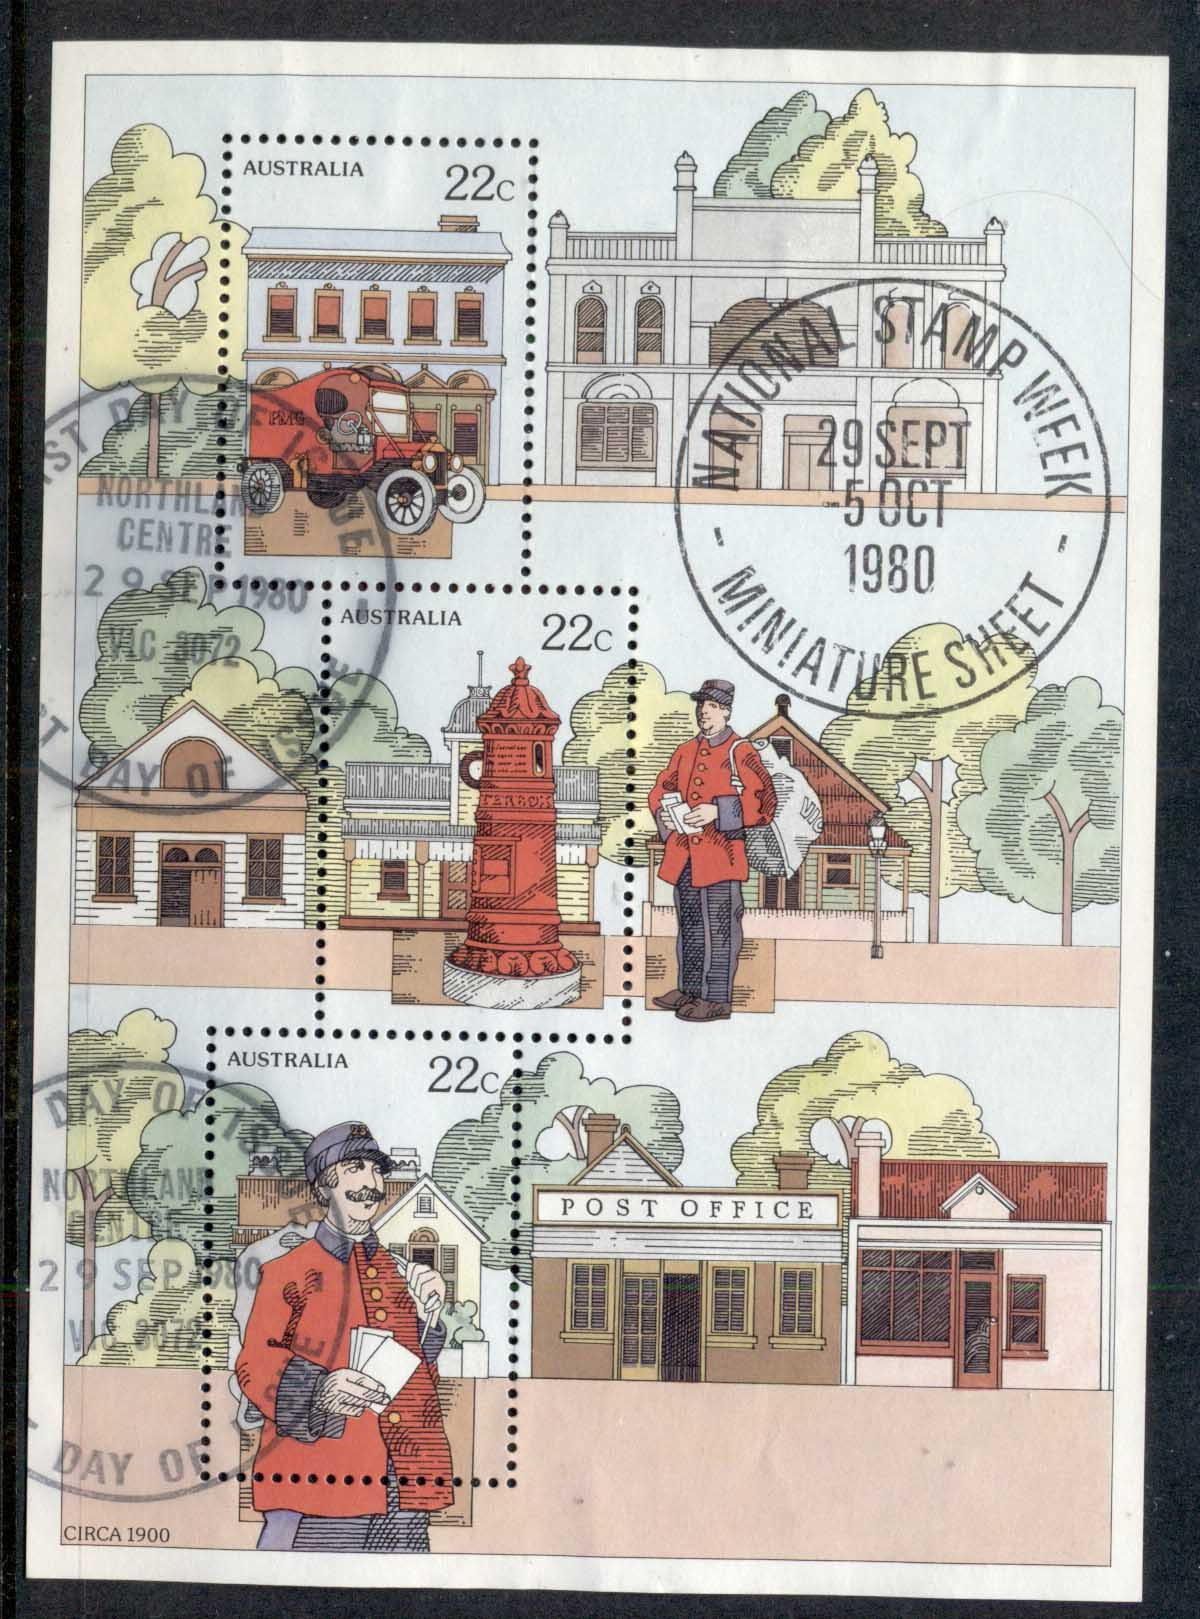 Australia 1980 Stamp Week MS Northland FDI